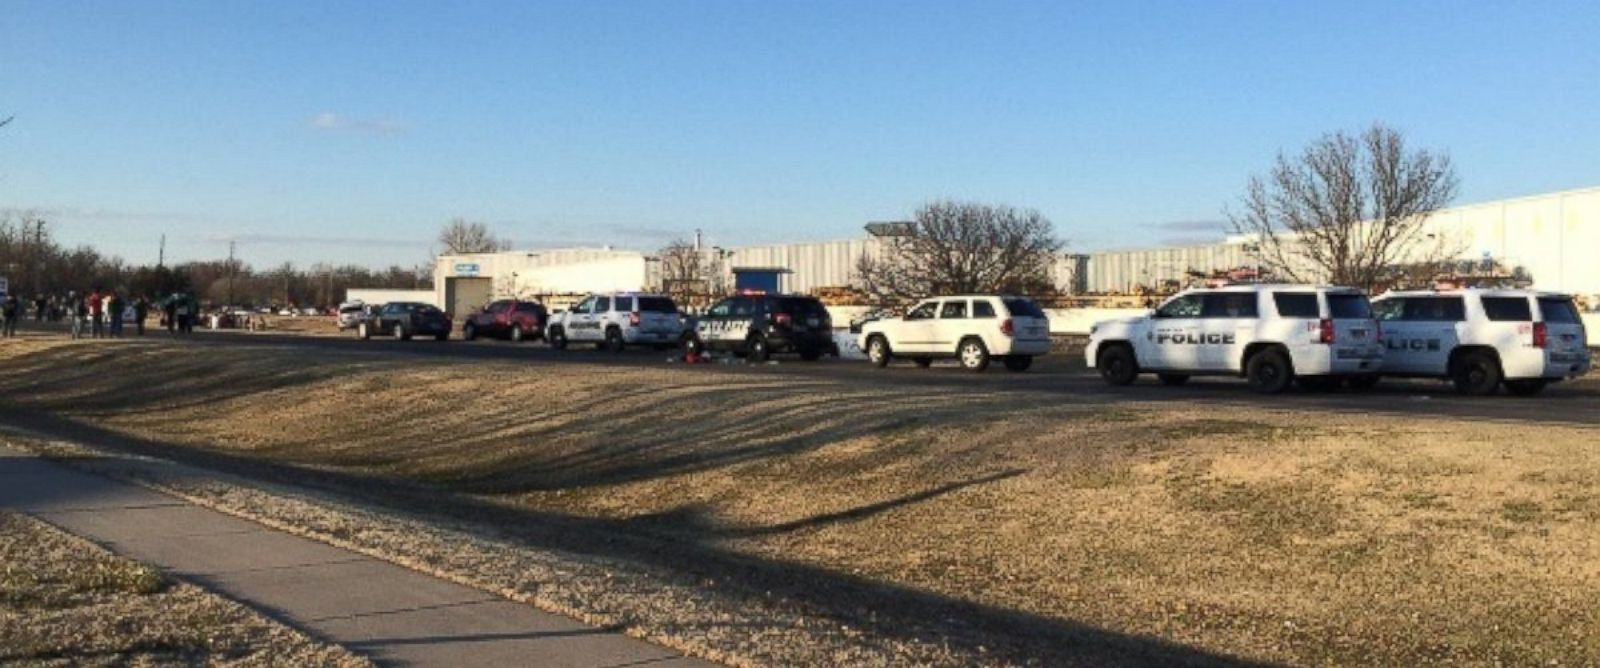 PHOTO: In this photo provided by KWCH-TV, police vehicles line the road after reports of a shooting at an industrial site in Hesston, Kan., on Feb. 25, 2016.